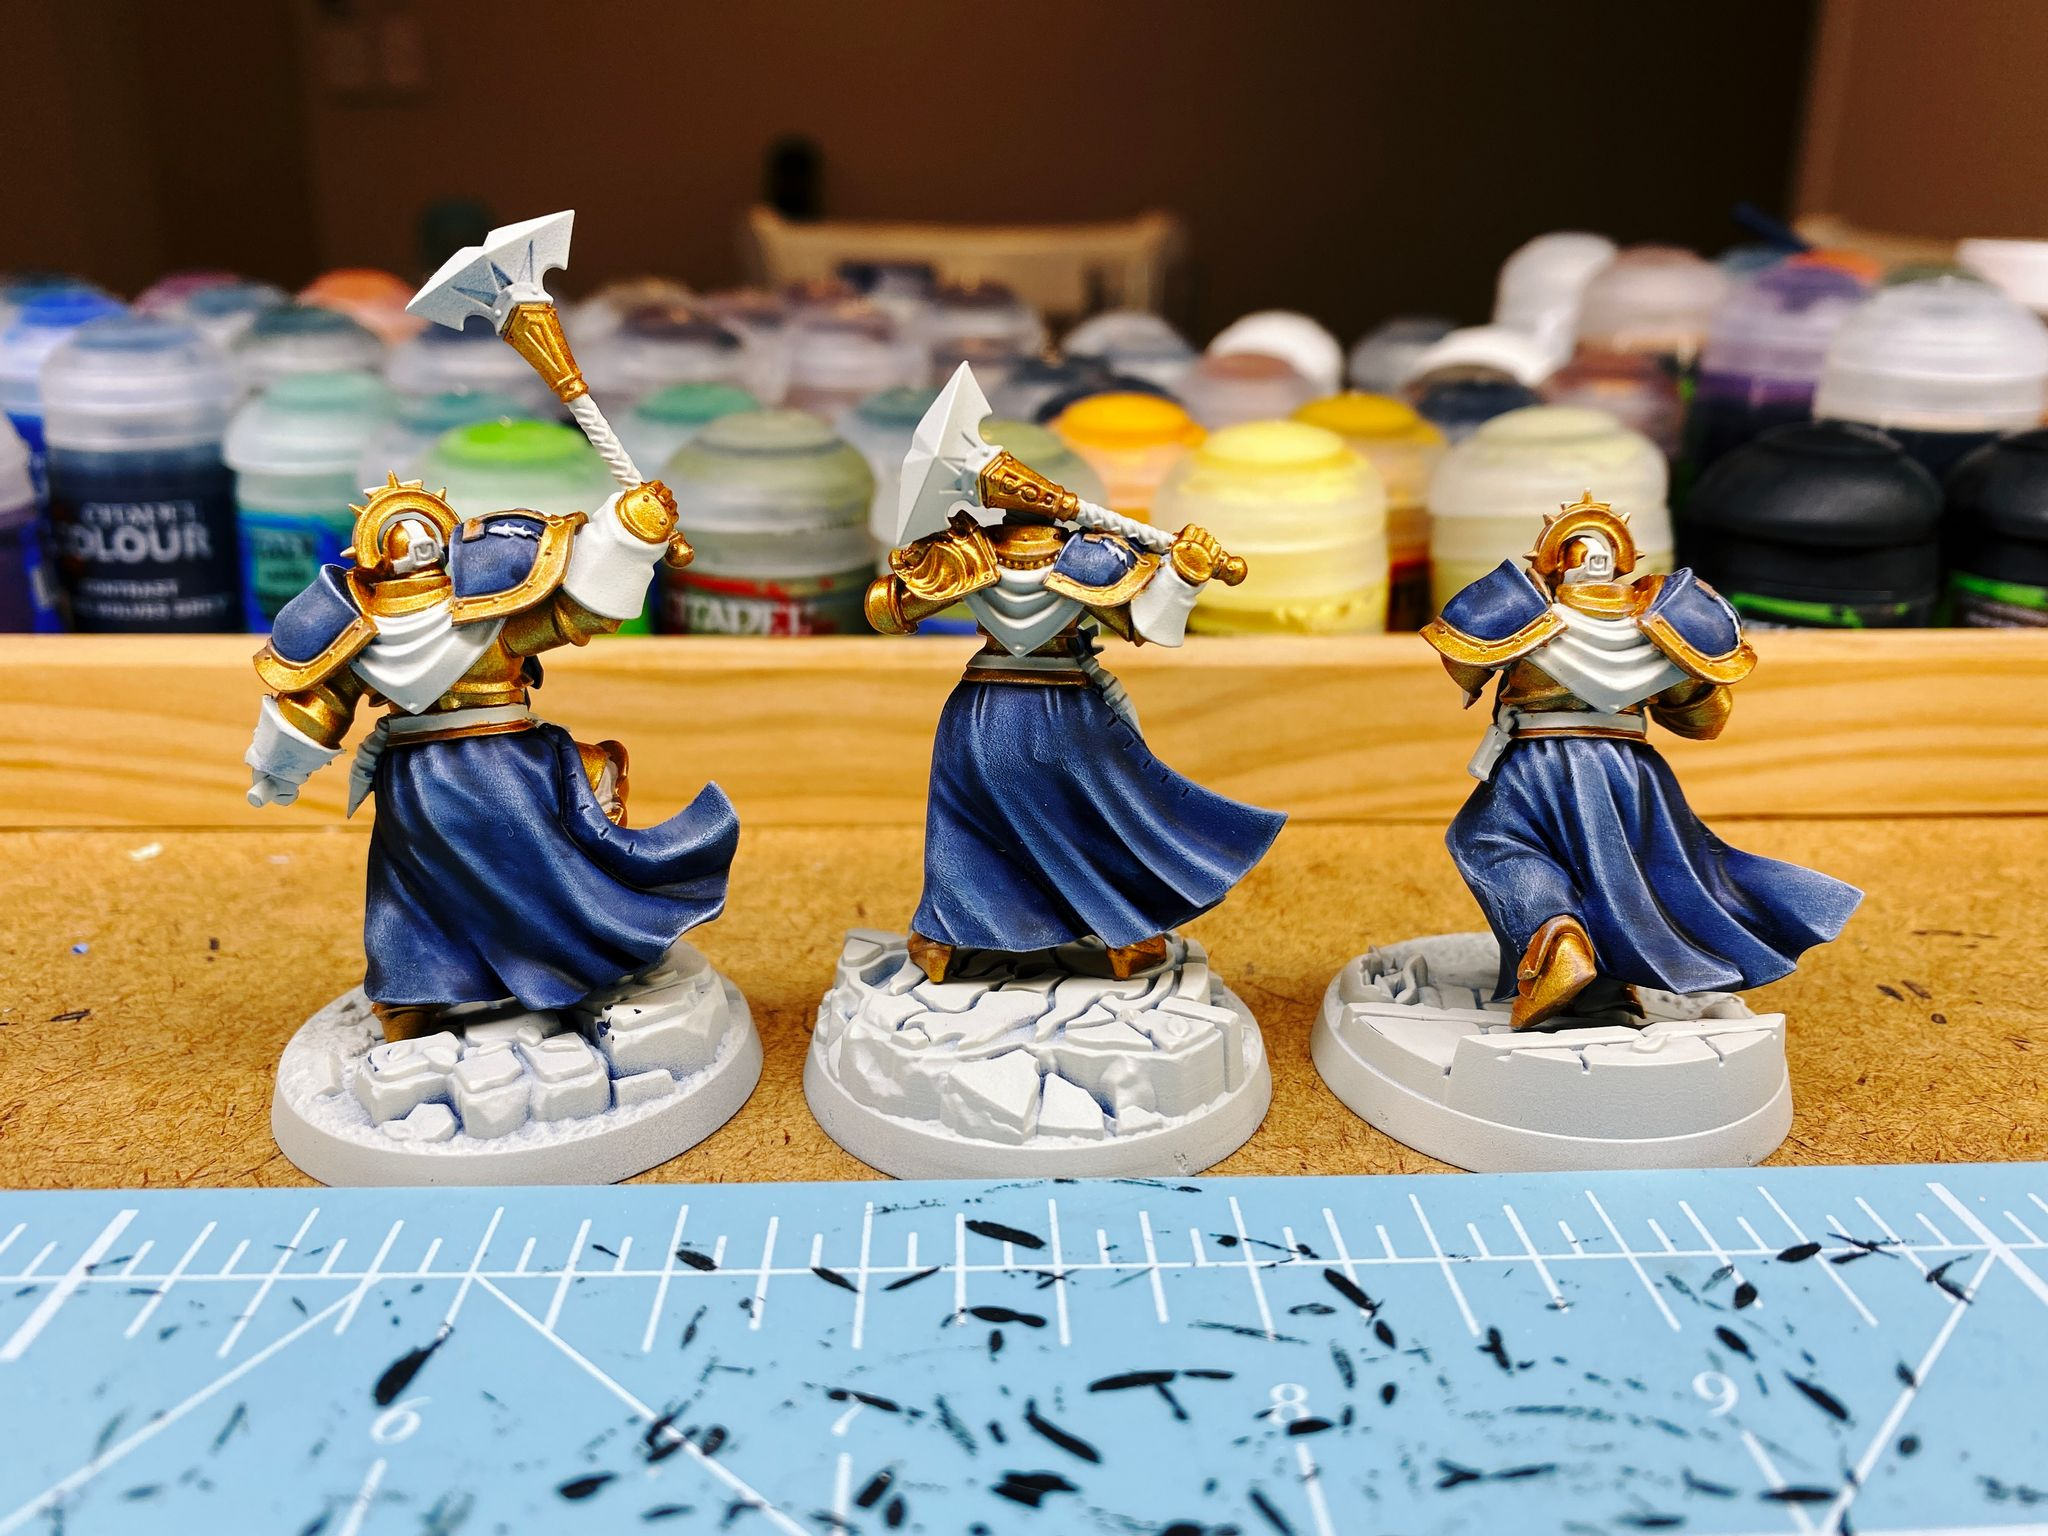 A photo of the back of the three partially-painted miniatures from the Ironsoul's Condemnors warband from Warhammer Underworlds. They're heavily armoured with gold armour, and have long flowing robes in dark navy blue. The raised edges of the robes are highlighted in a wonderfully smooth fashion up to a light blue, almost like they've been airbrushed.